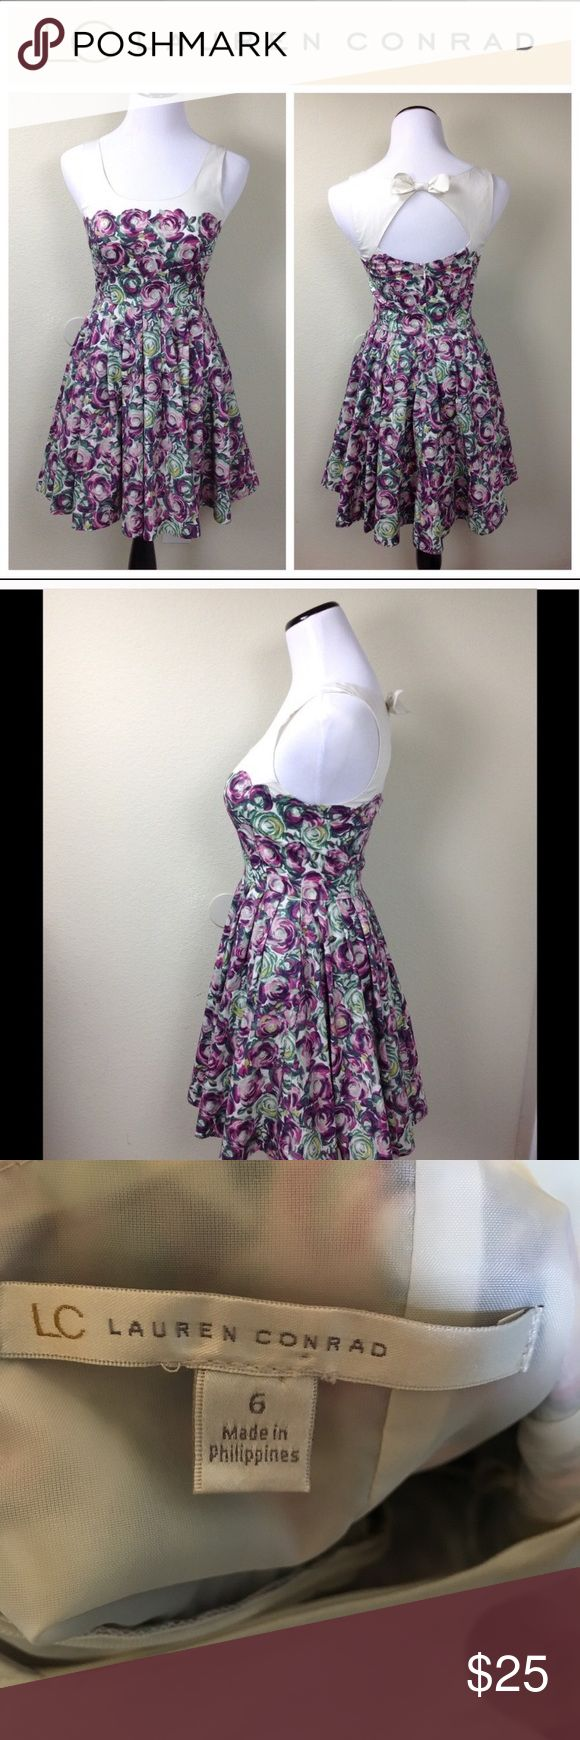 """Sleeveless Open Back Floral Dress Only worn once for my graduation! Gorgeous dress with an open back and accent bow. The Floral pattern is breathtaking and the style is extremely flattering. Did not come with belt, but looks cute without (or add your own!). ~17"""" chest; ~14"""" waist, ~34"""" length. Comes with FREE new Trifle Cosmetics Raspberry Ripple- Ombré Radiance Blush Palette (when purchased at full price, unless bundled) LC Lauren Conrad Dresses"""